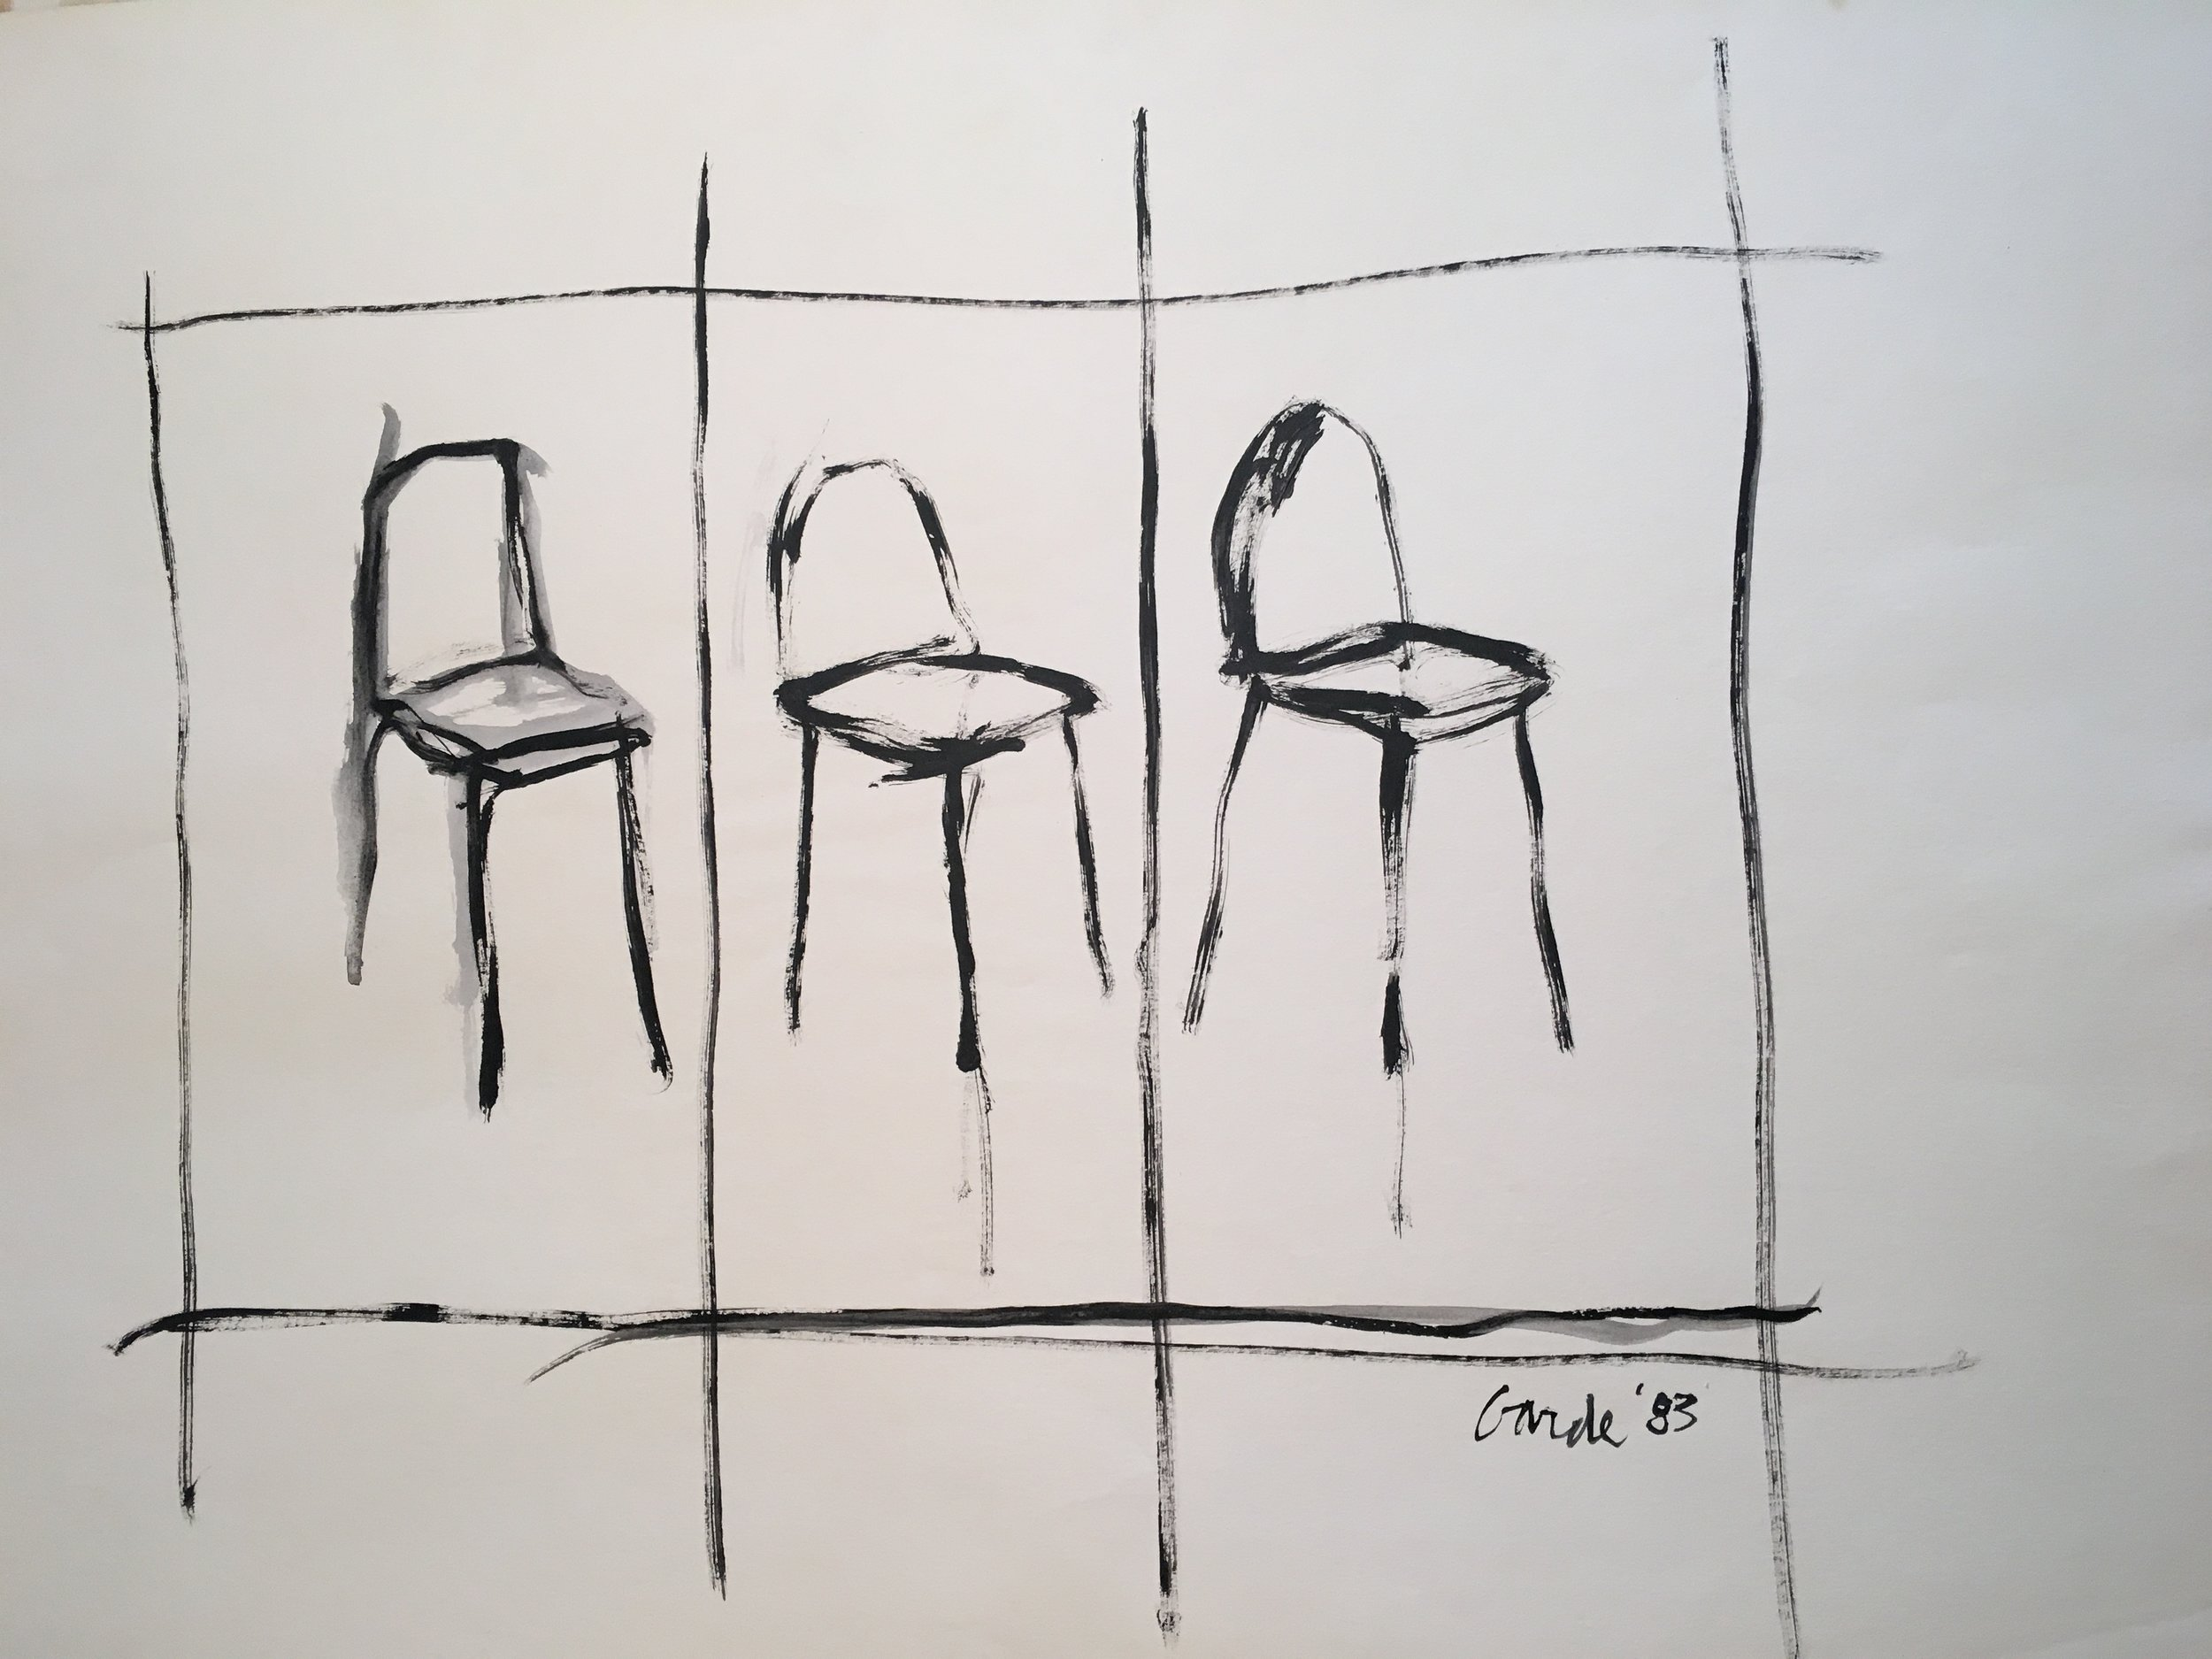 Three  Chairs, 1983. Acrylic on paper, 7 x 11 in. (18 x 28 cm.)